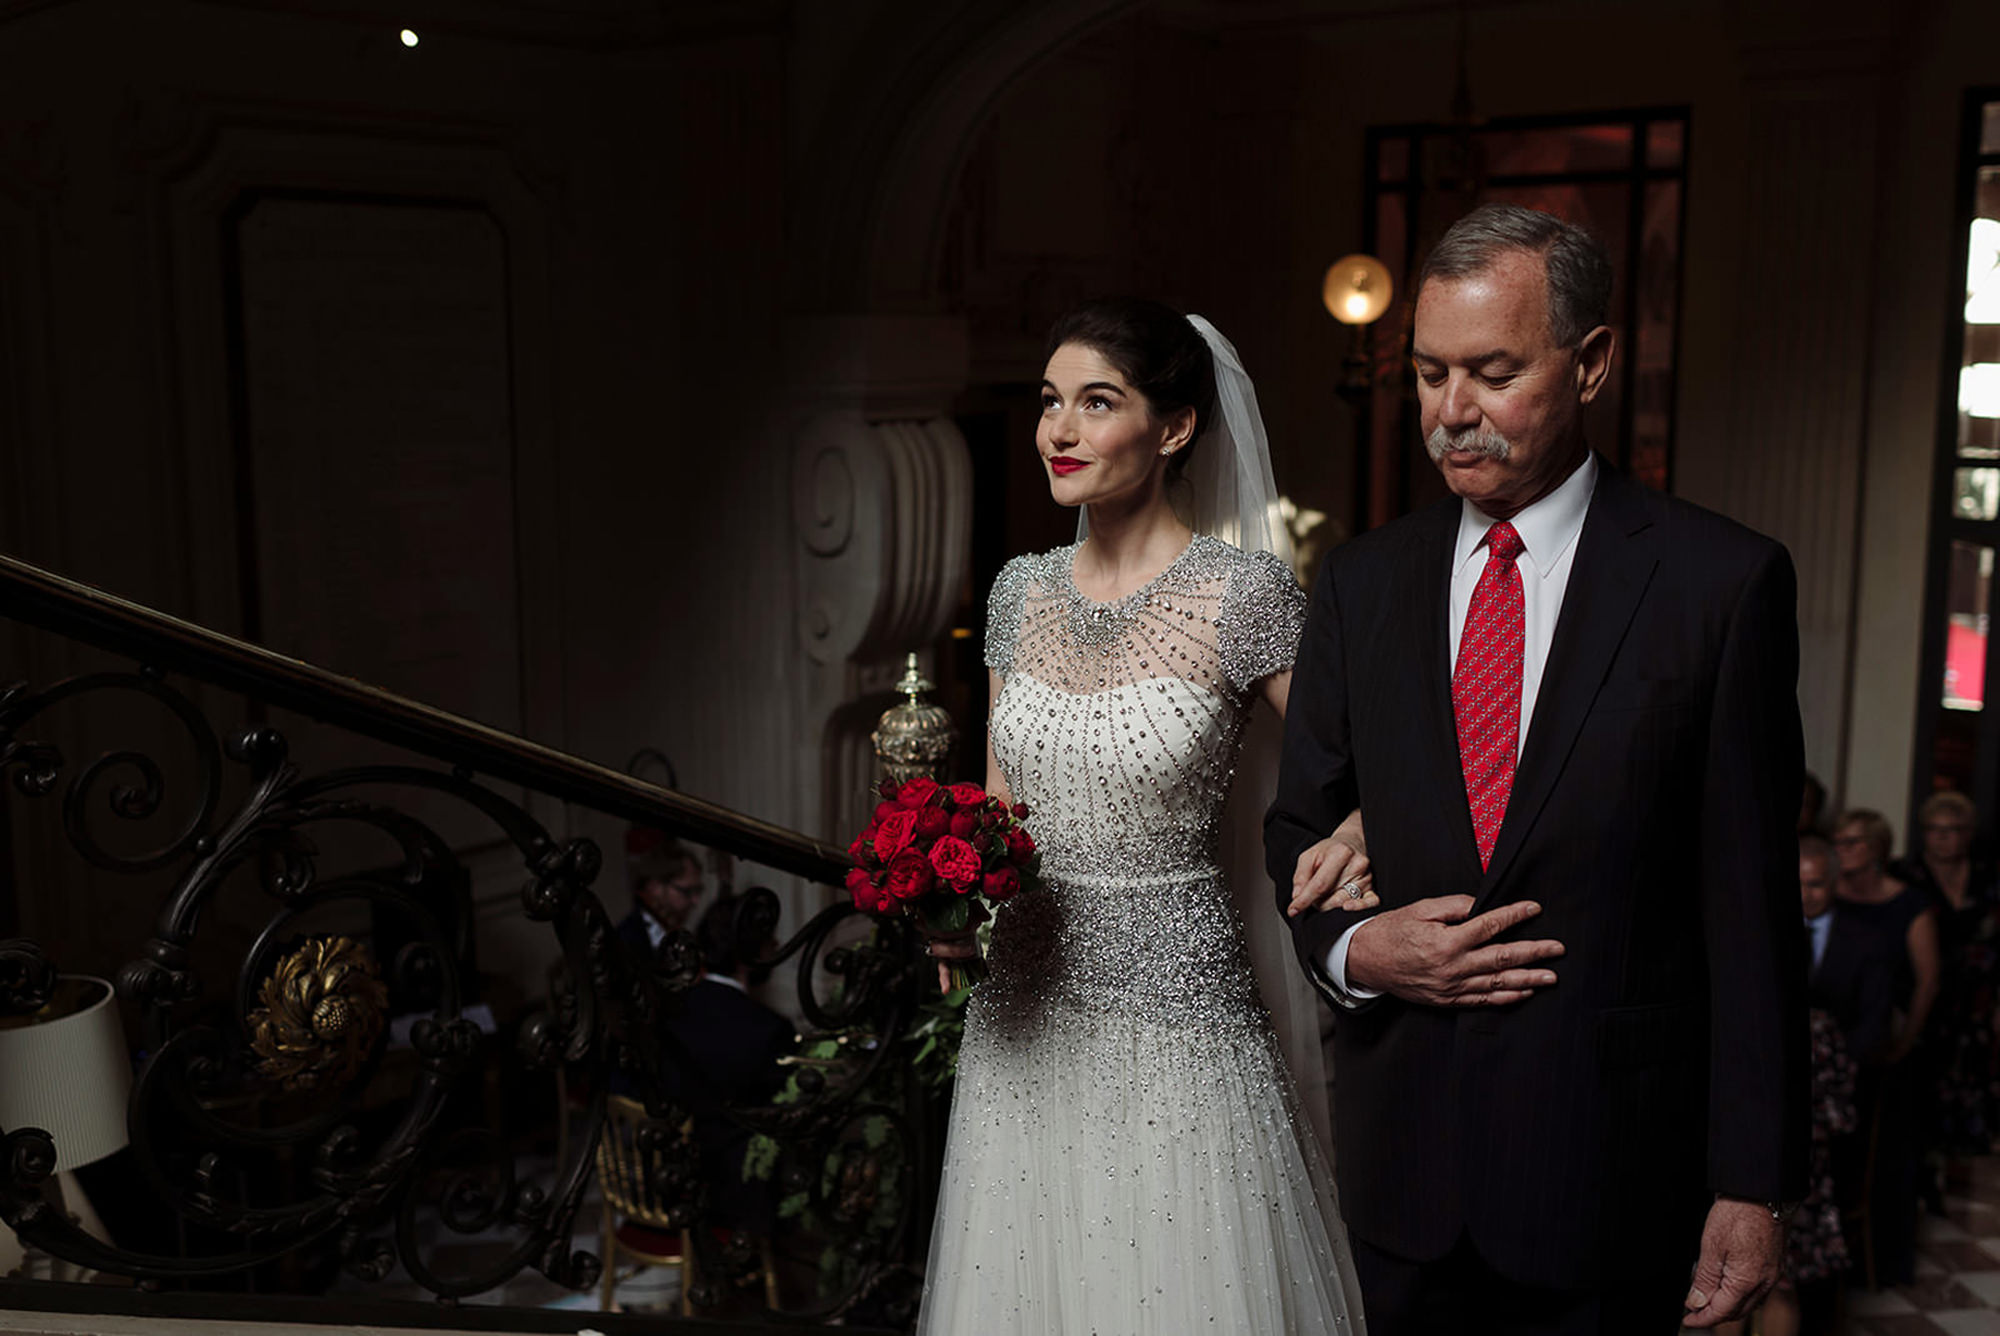 bride_and_dad_before_walking_down_the_aisle_worlds_best_wedding_photos_by_thierry_joubert